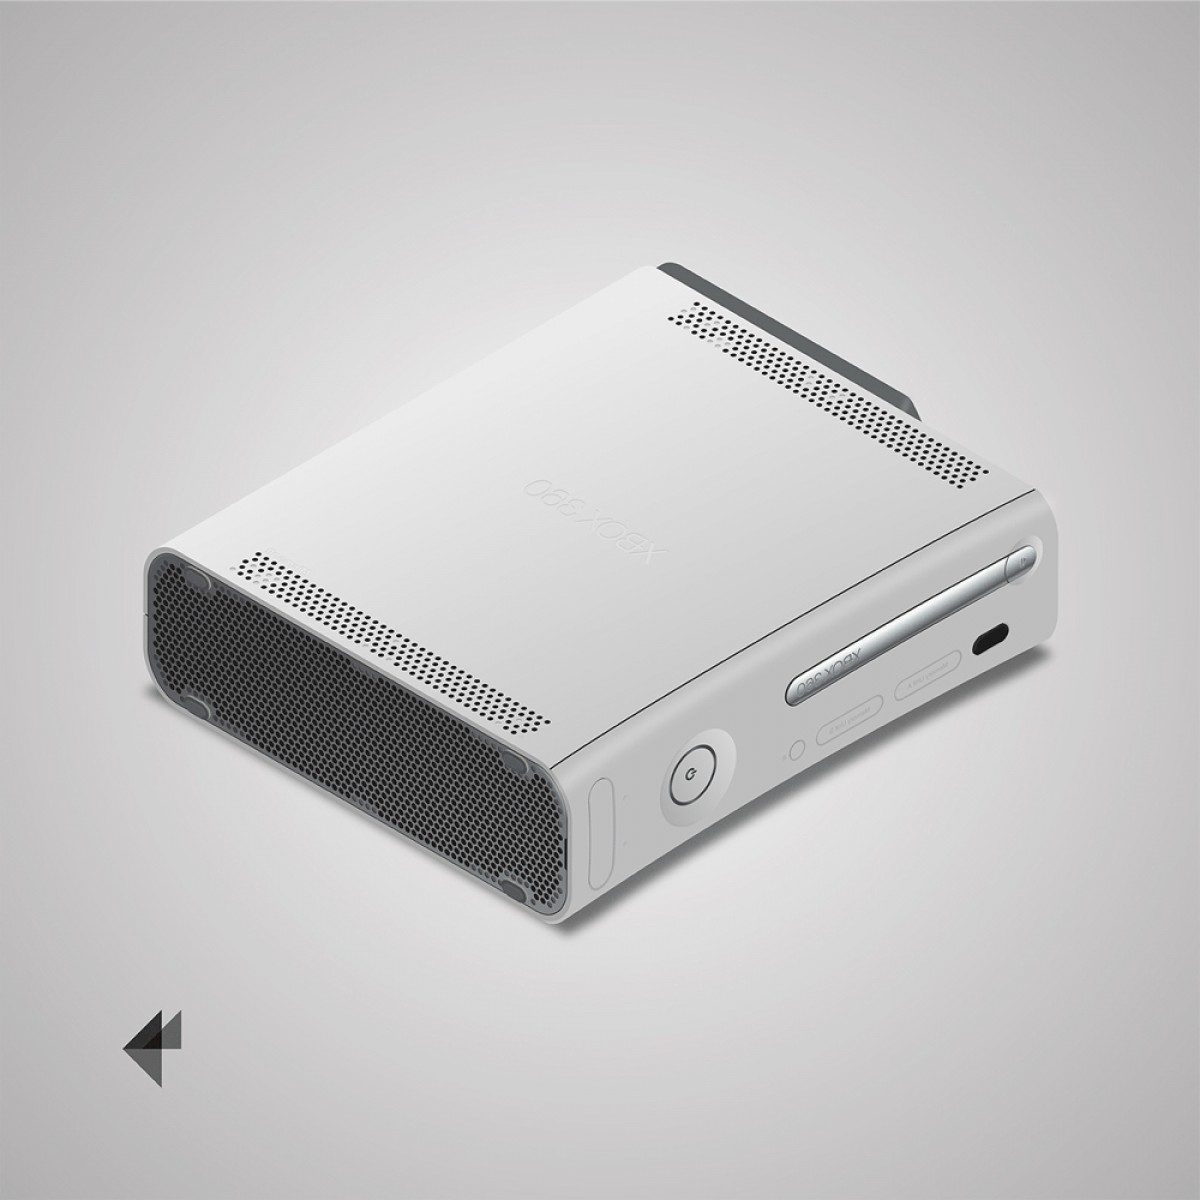 Xbox 360 Vector: Vector Gifs Of The Original Xbox And The Xbox